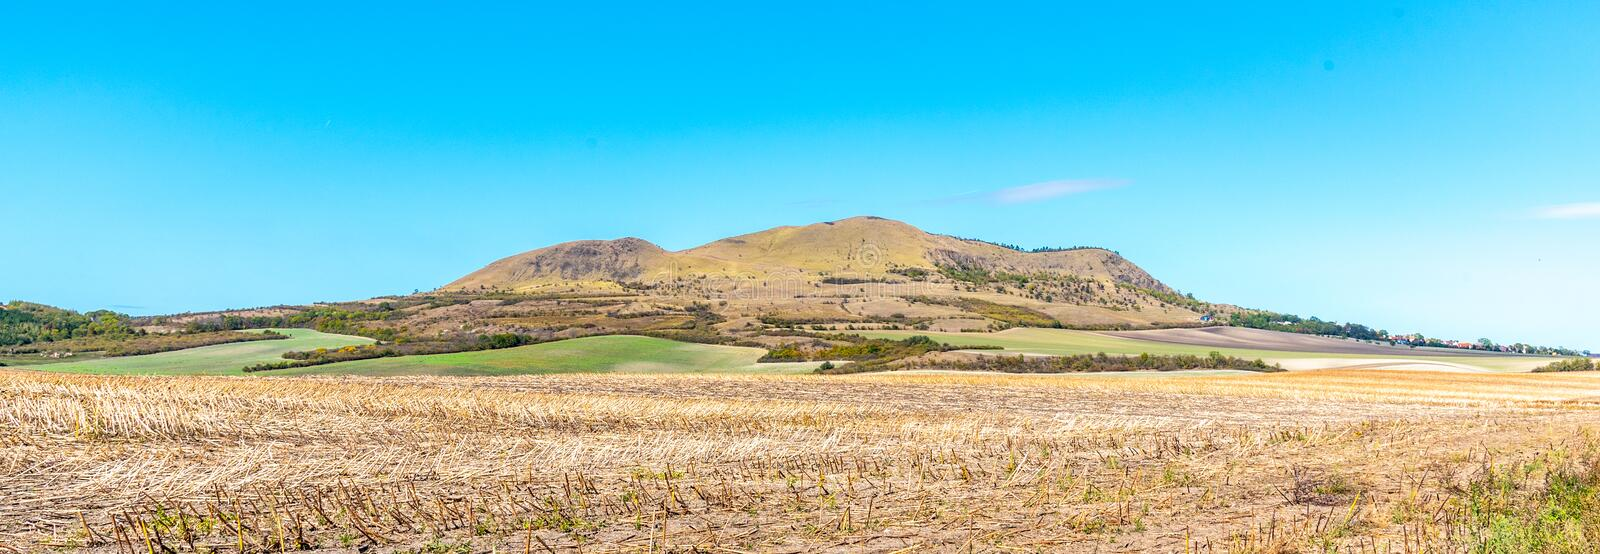 Rana Mountain near Louny in Central Bohemian Highlands on sunny summer day, Czech Republic. Panoramic view.  stock photography